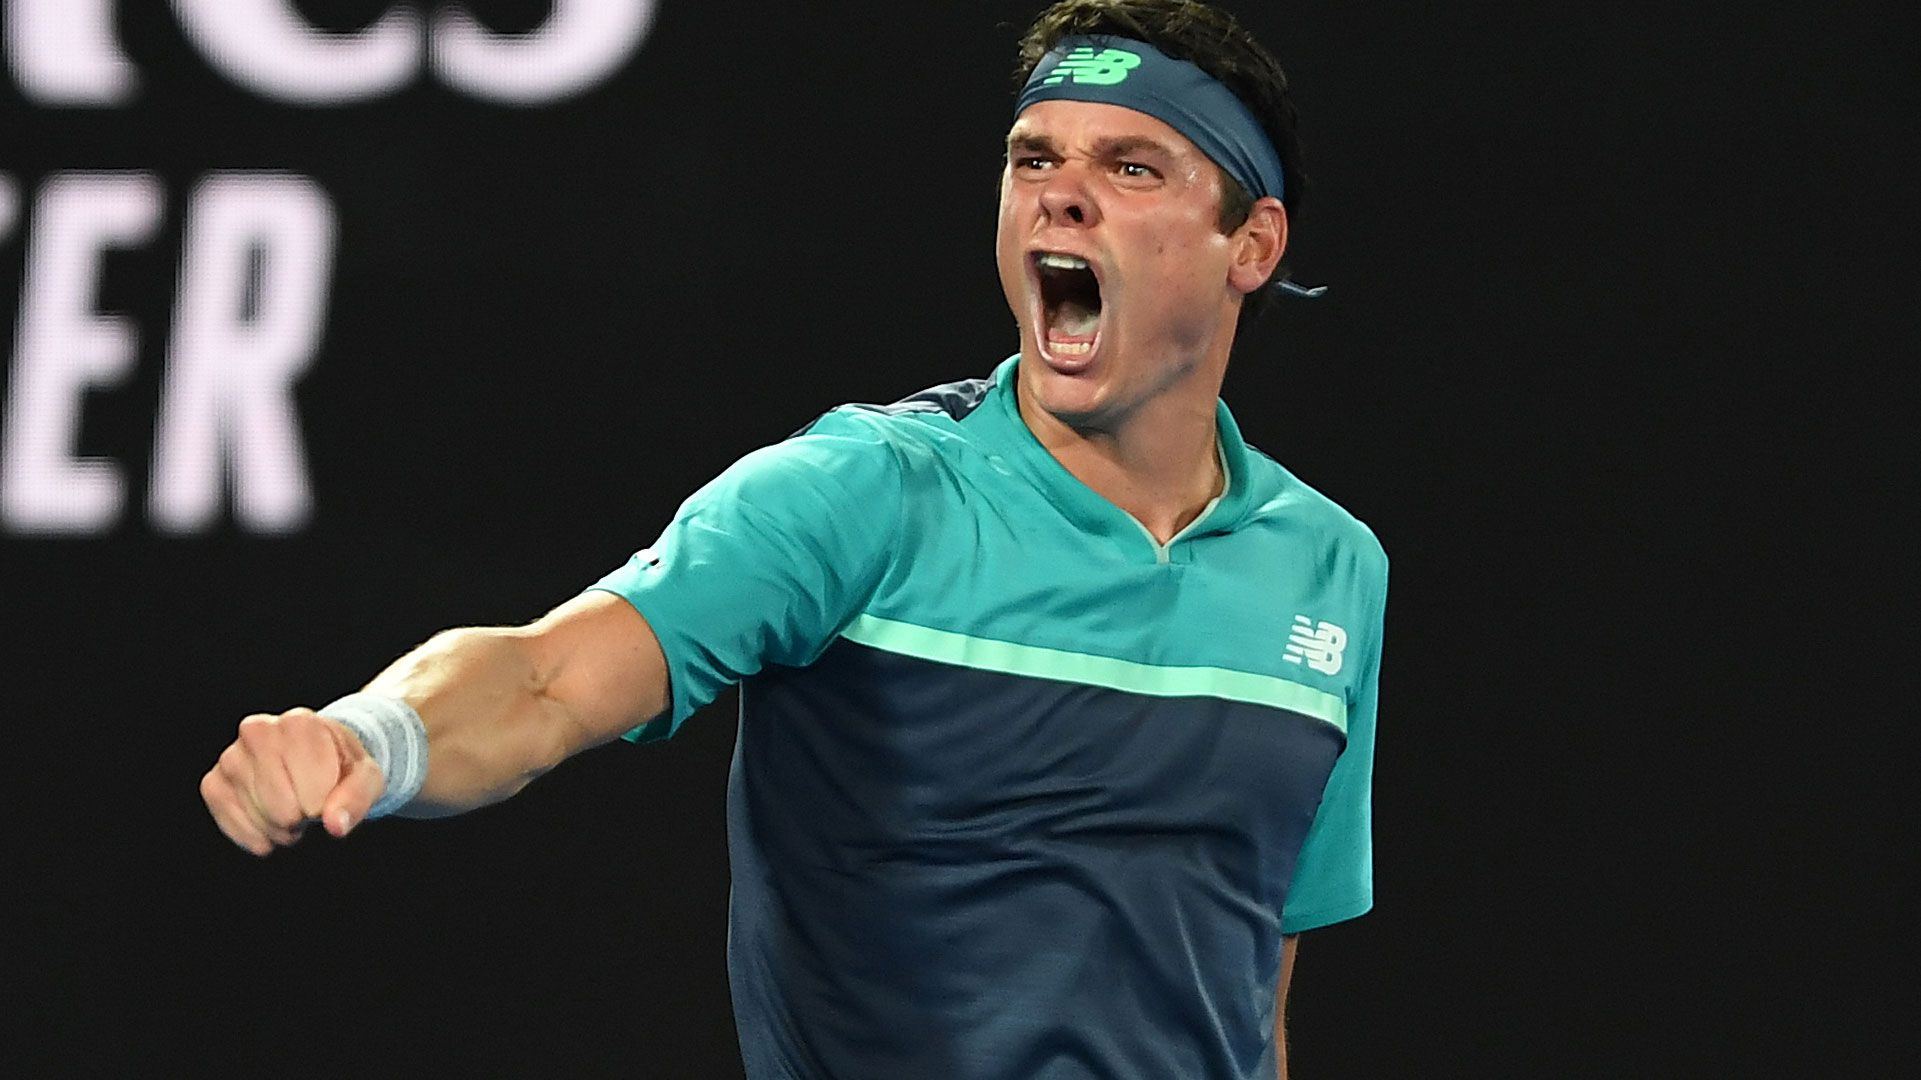 Australian Open: Raonic defeats former champ Wawrinka in pumping four-setter